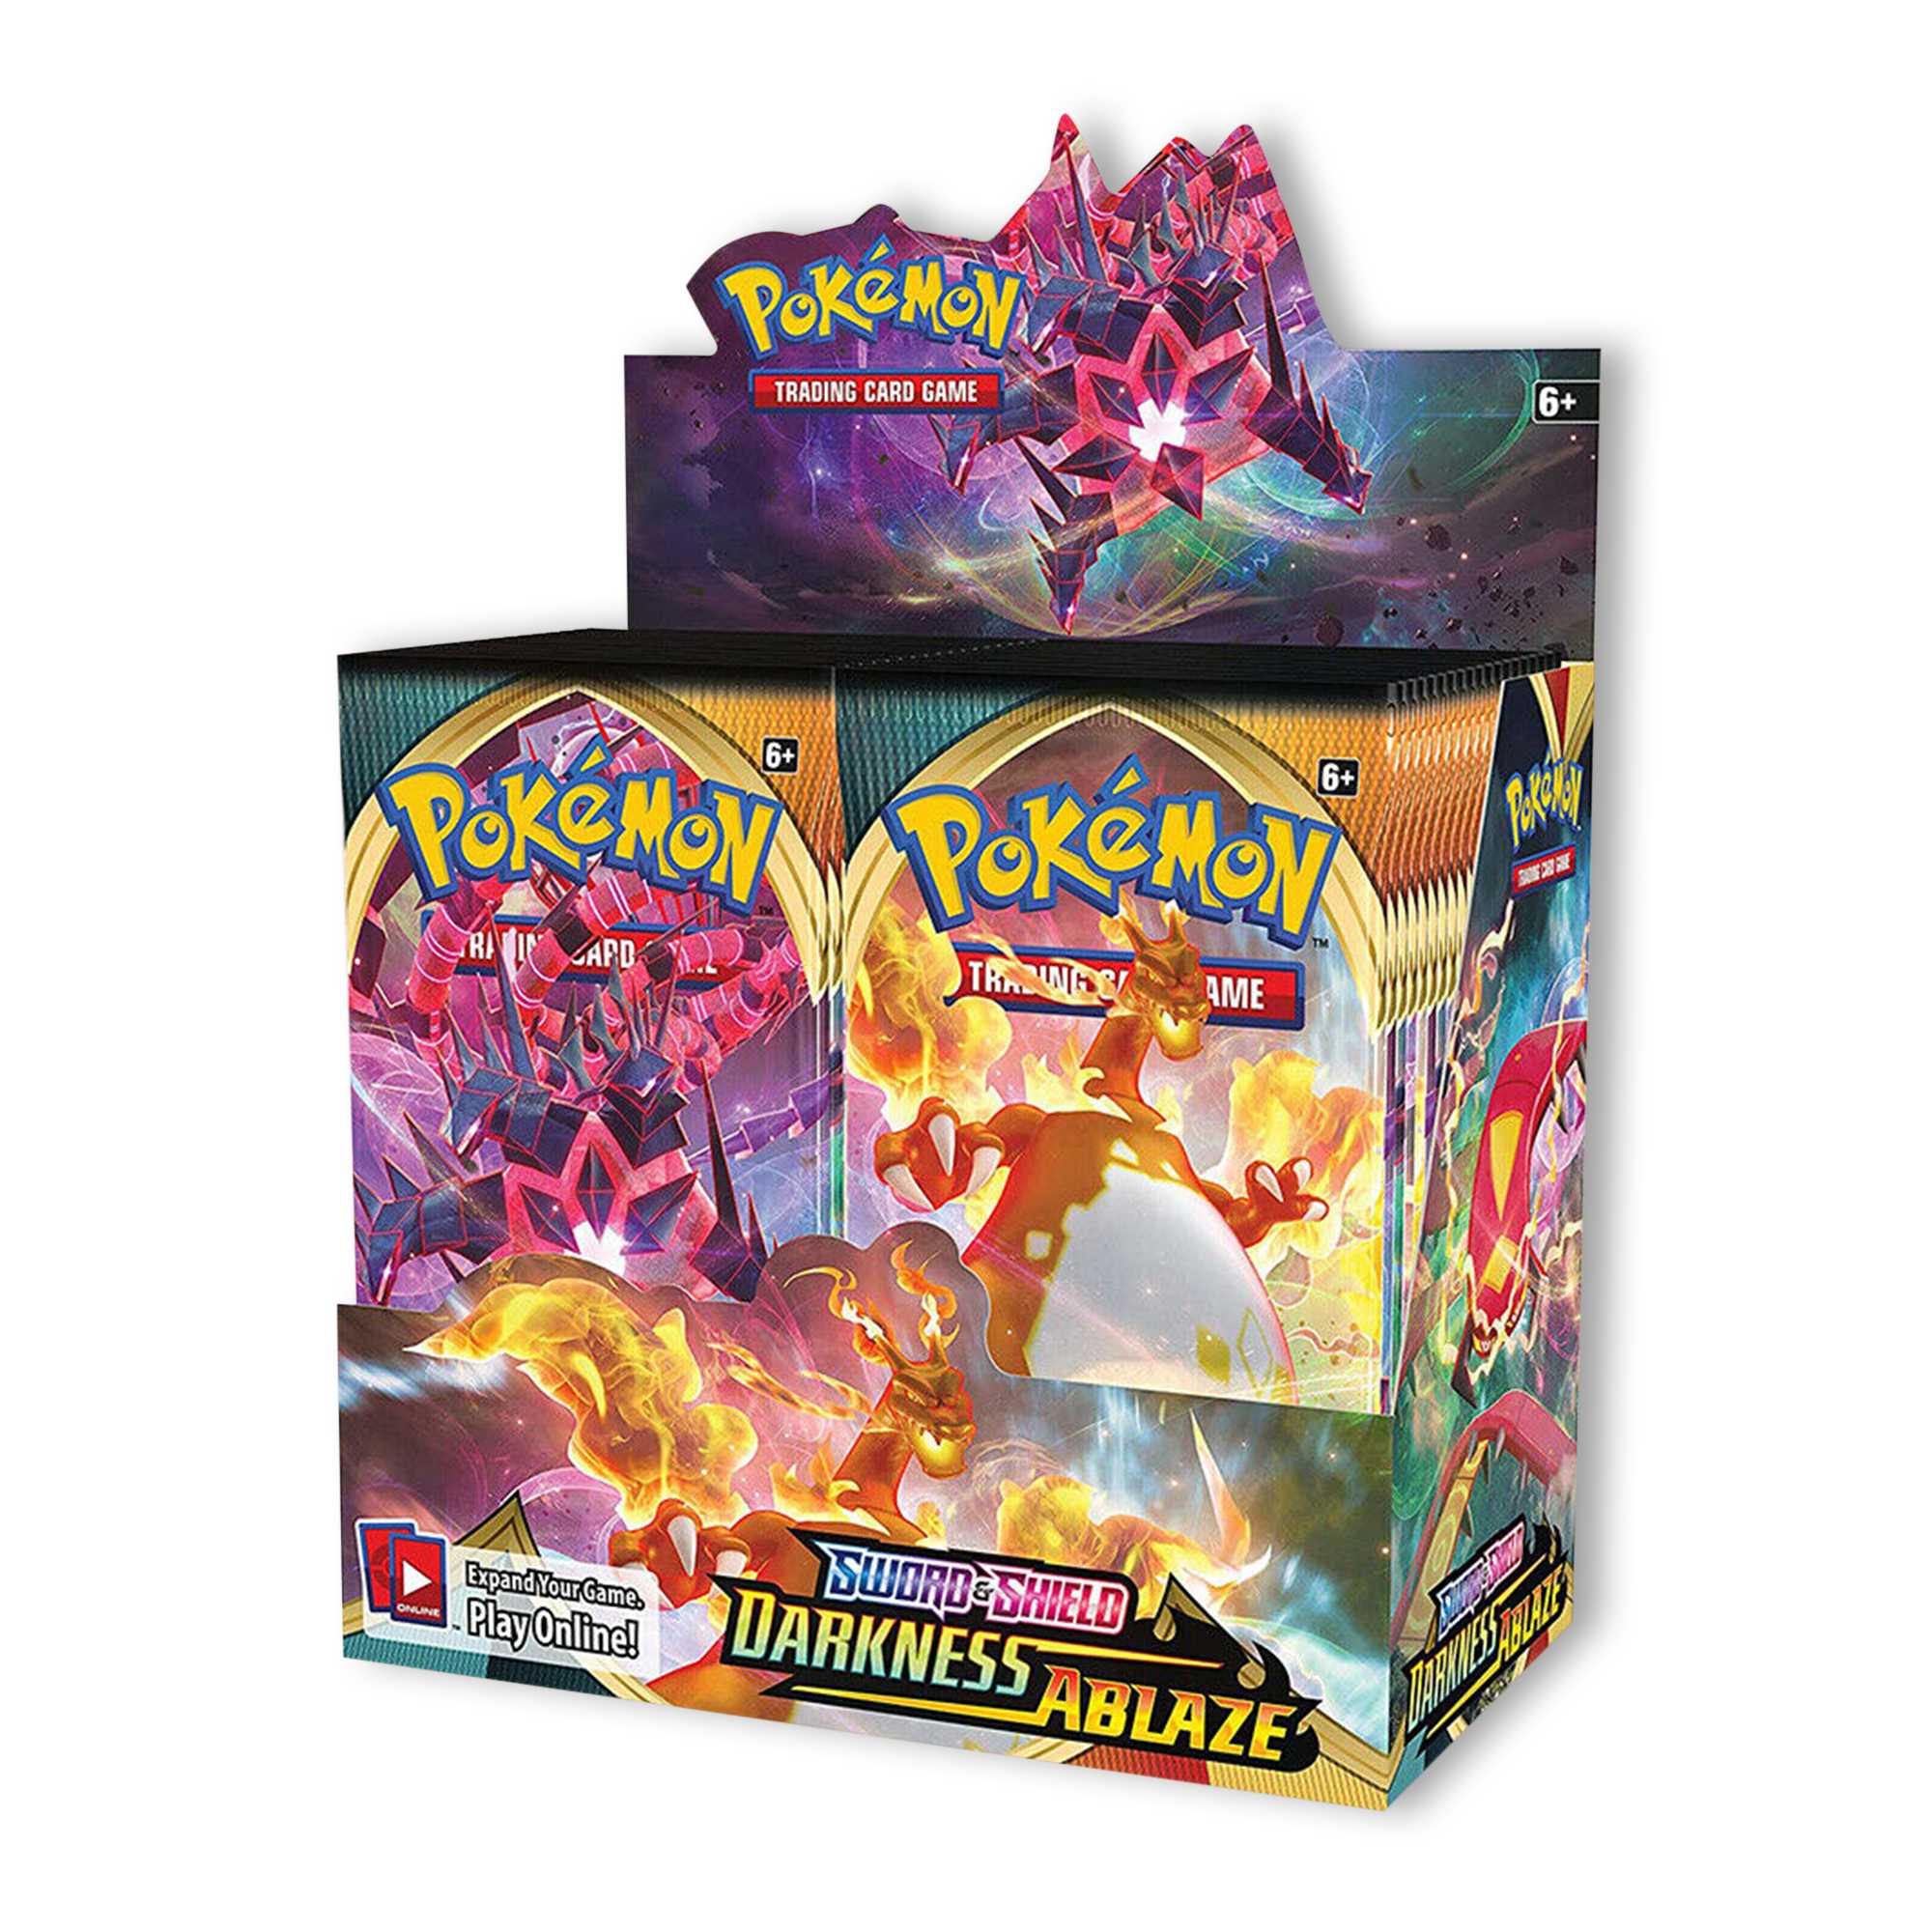 Sword & Shield - Darkness Ablaze Booster Box